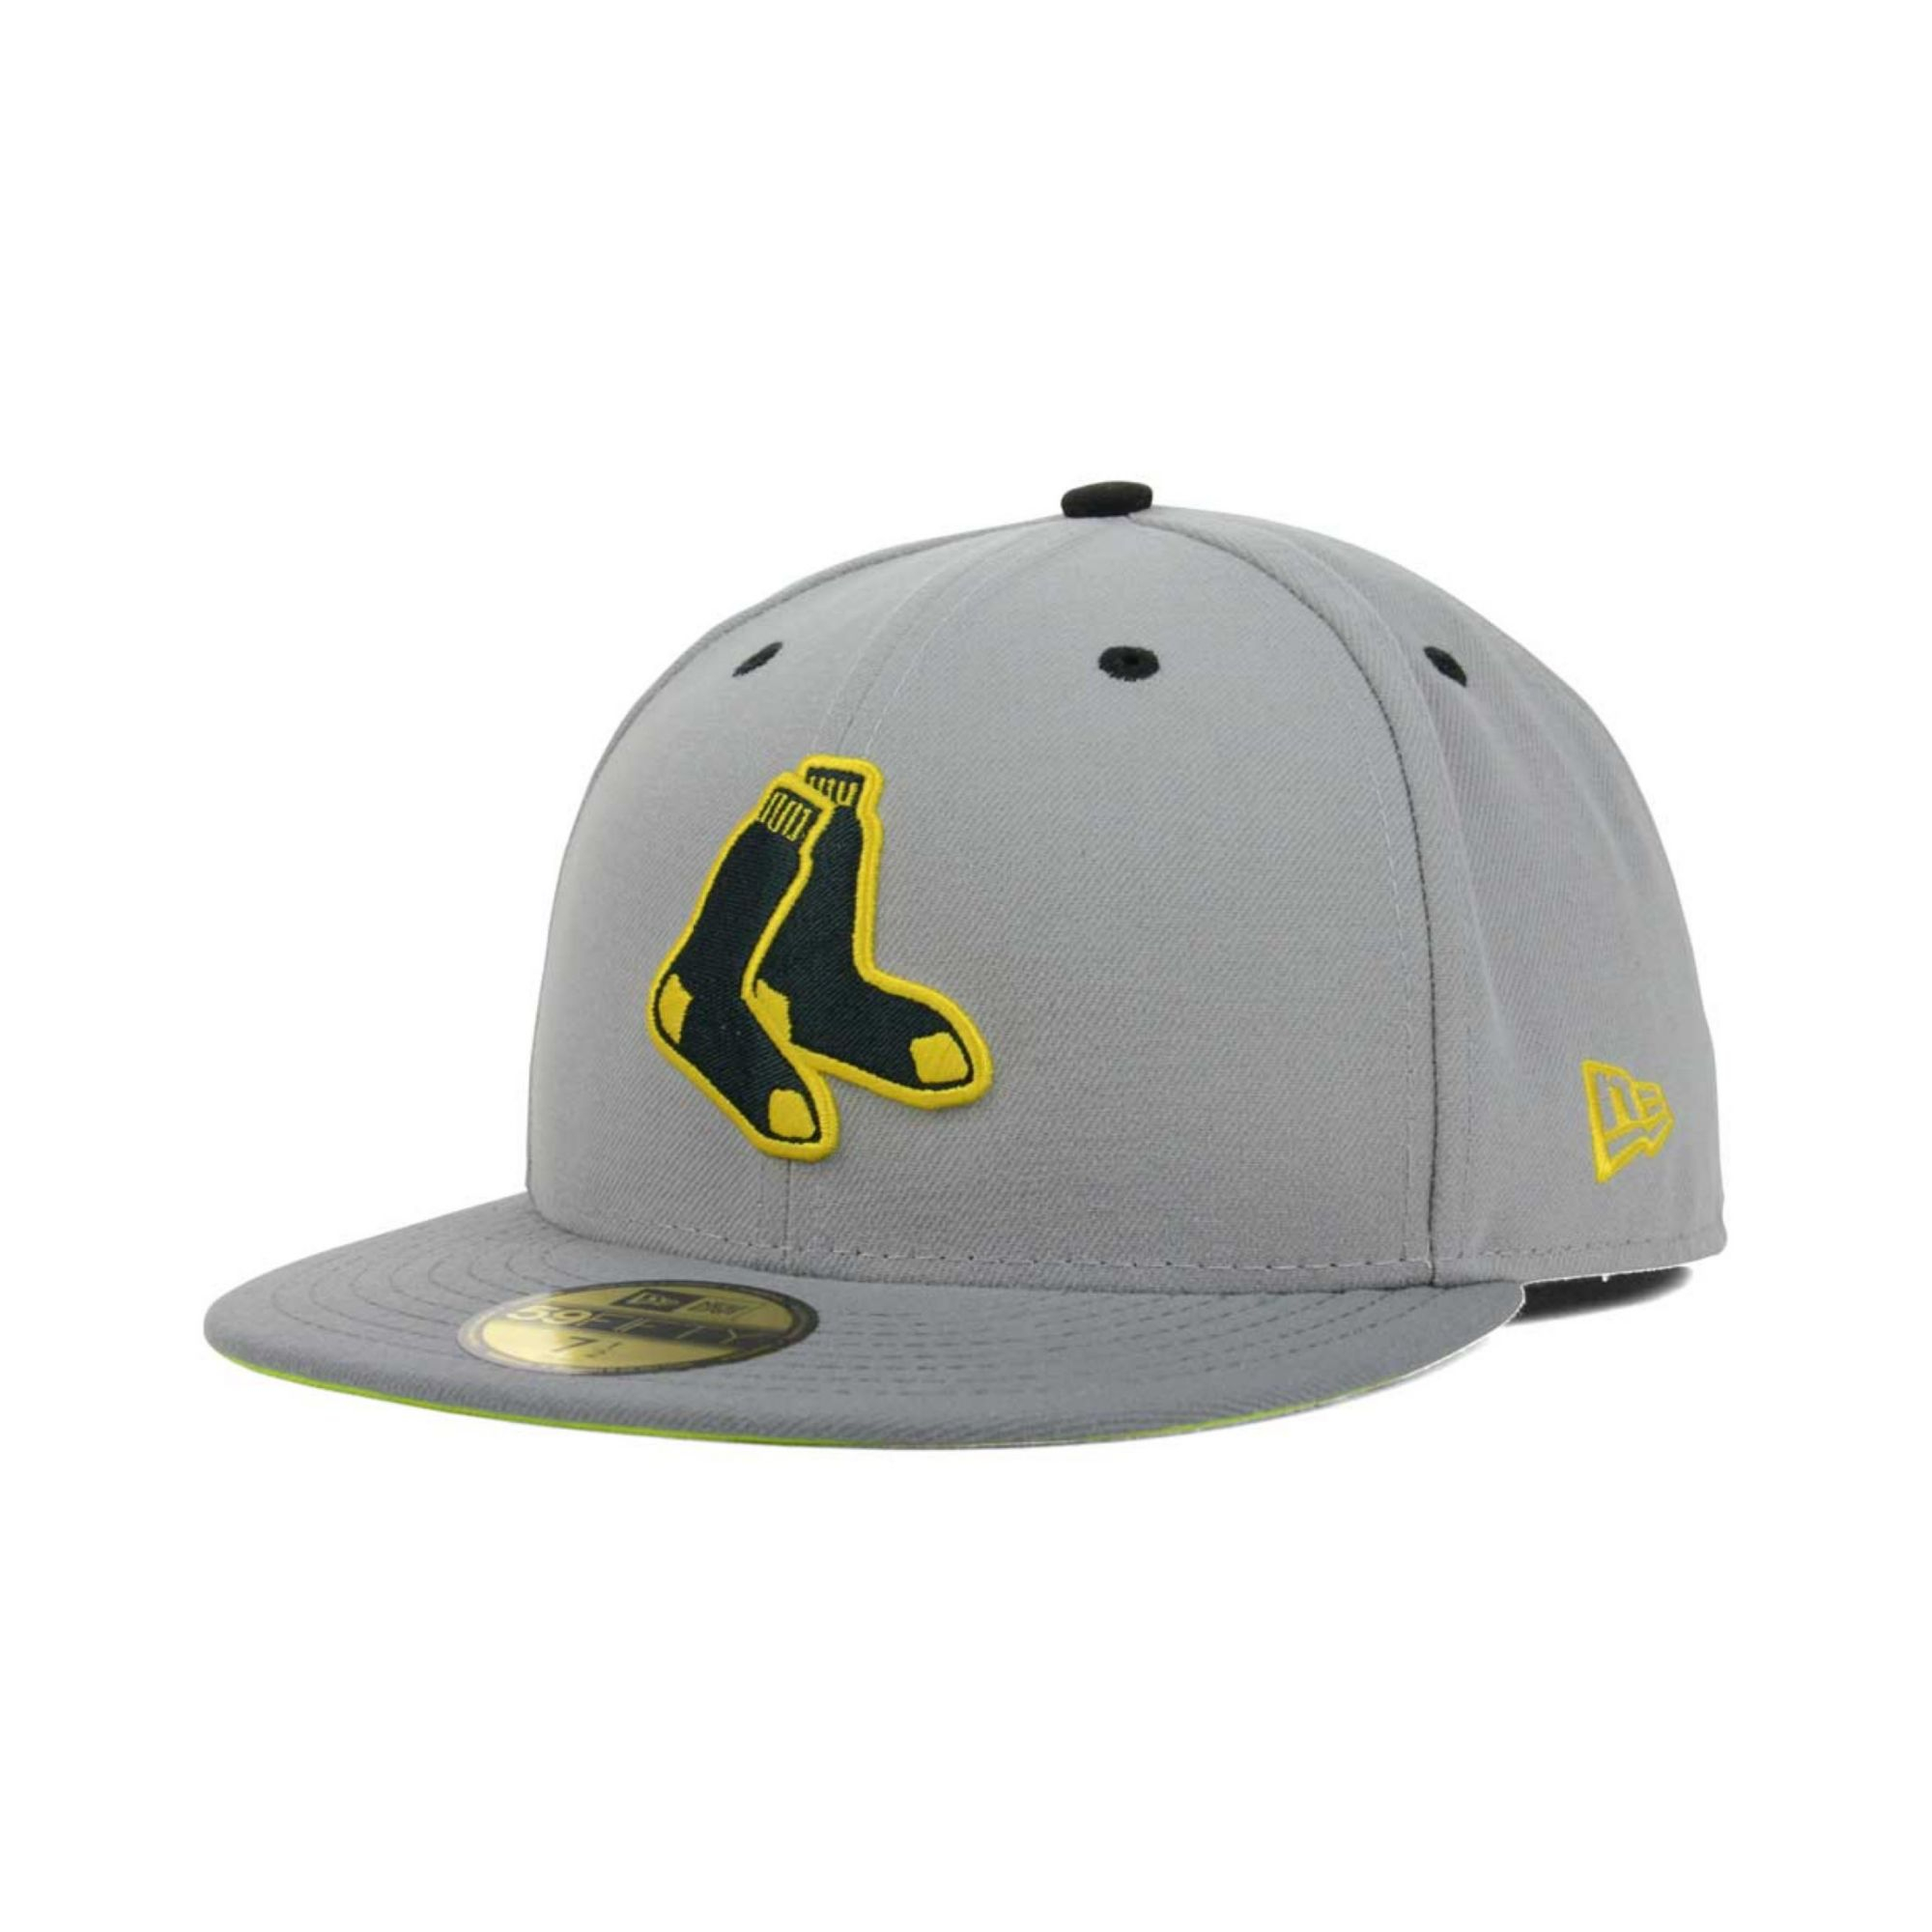 e5649a4e ... new era 59fifty navy b976a e5f7b; sweden lyst ktz boston red sox mlb  gvolt 59fifty cap in gray for men ce157 0d219